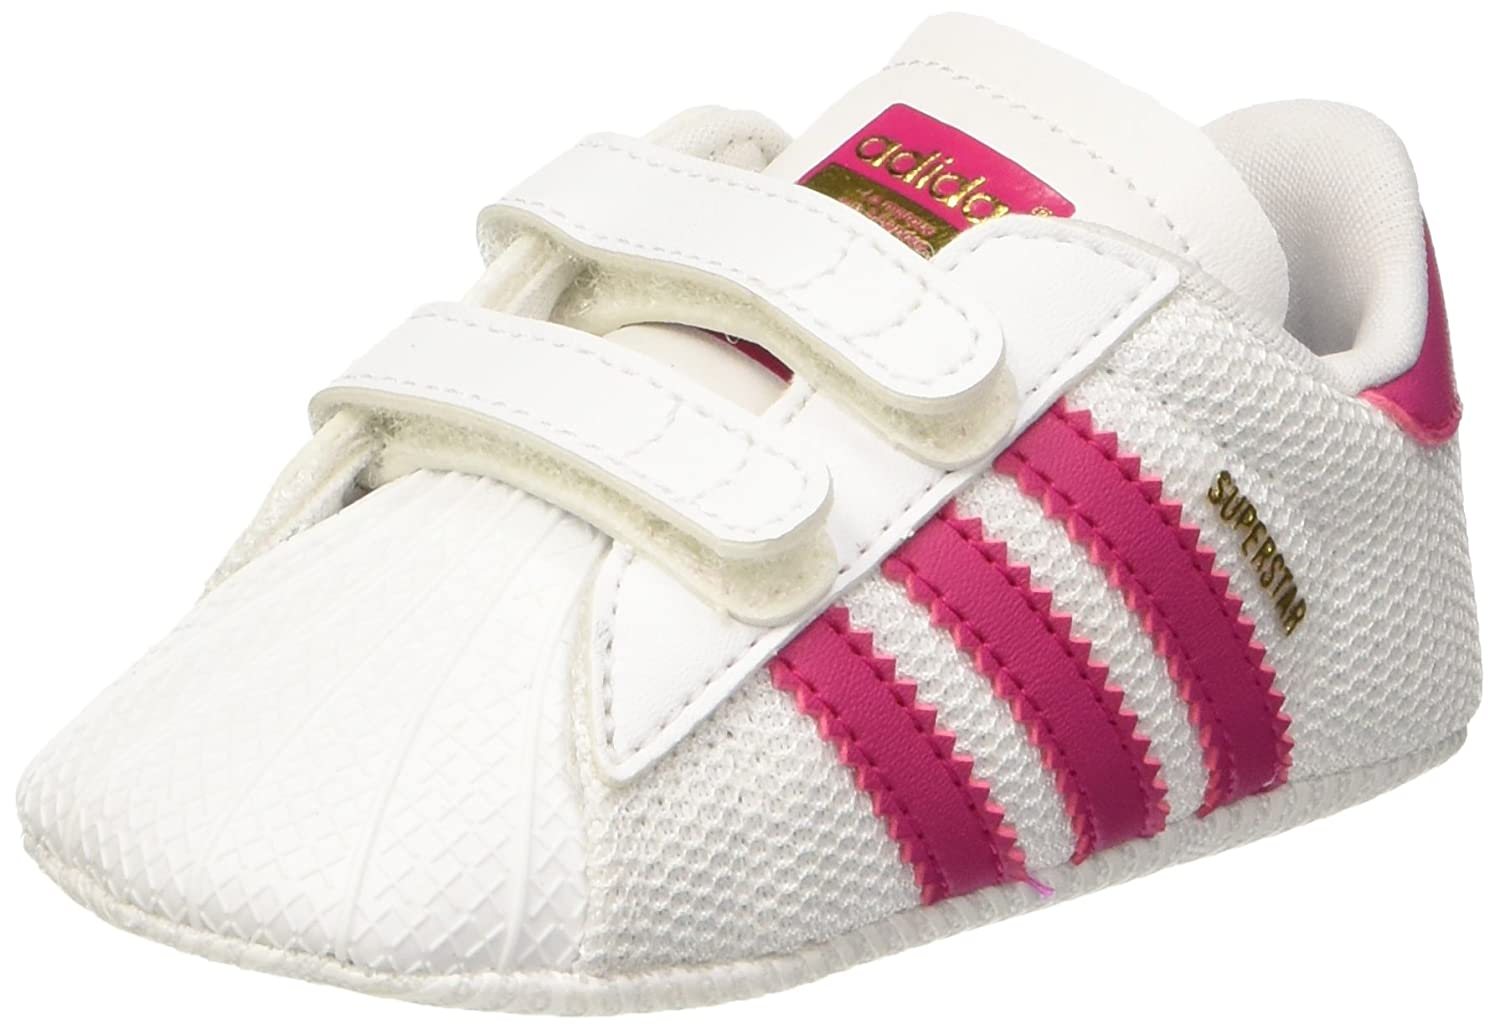 Adidas - S79917 - Chaussures - Mixte Enfant